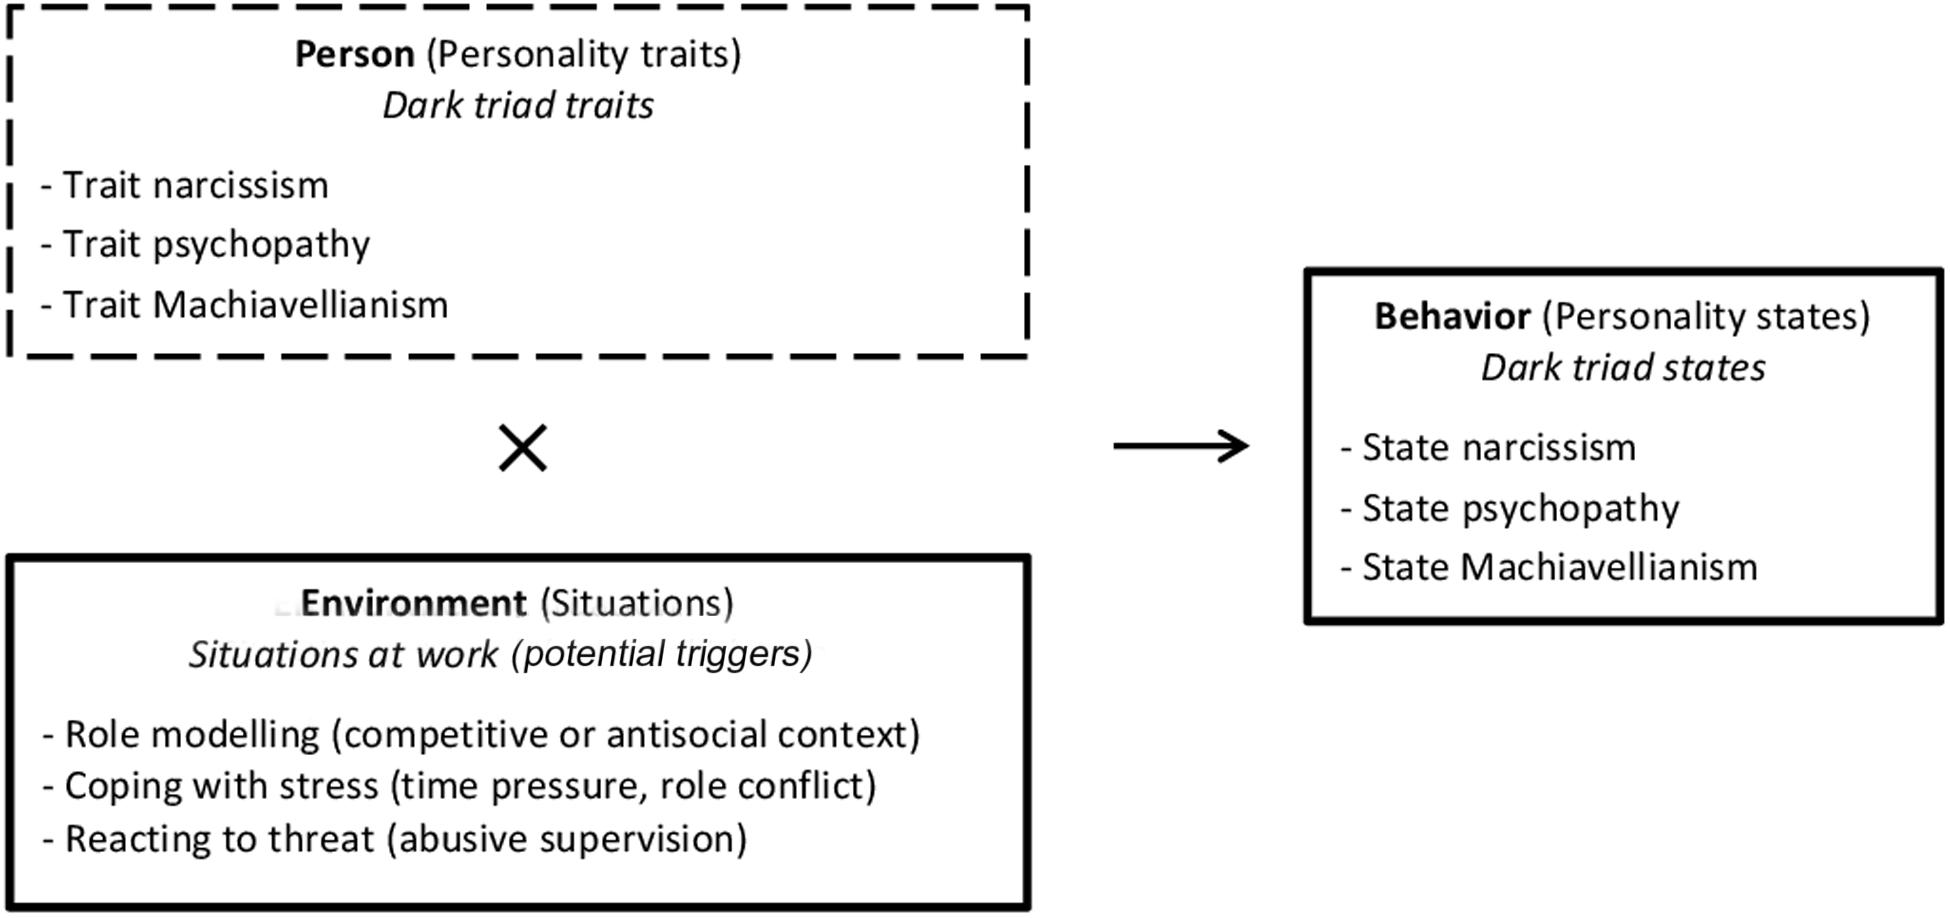 Frontiers | Developing a Taxonomy of Dark Triad Triggers at